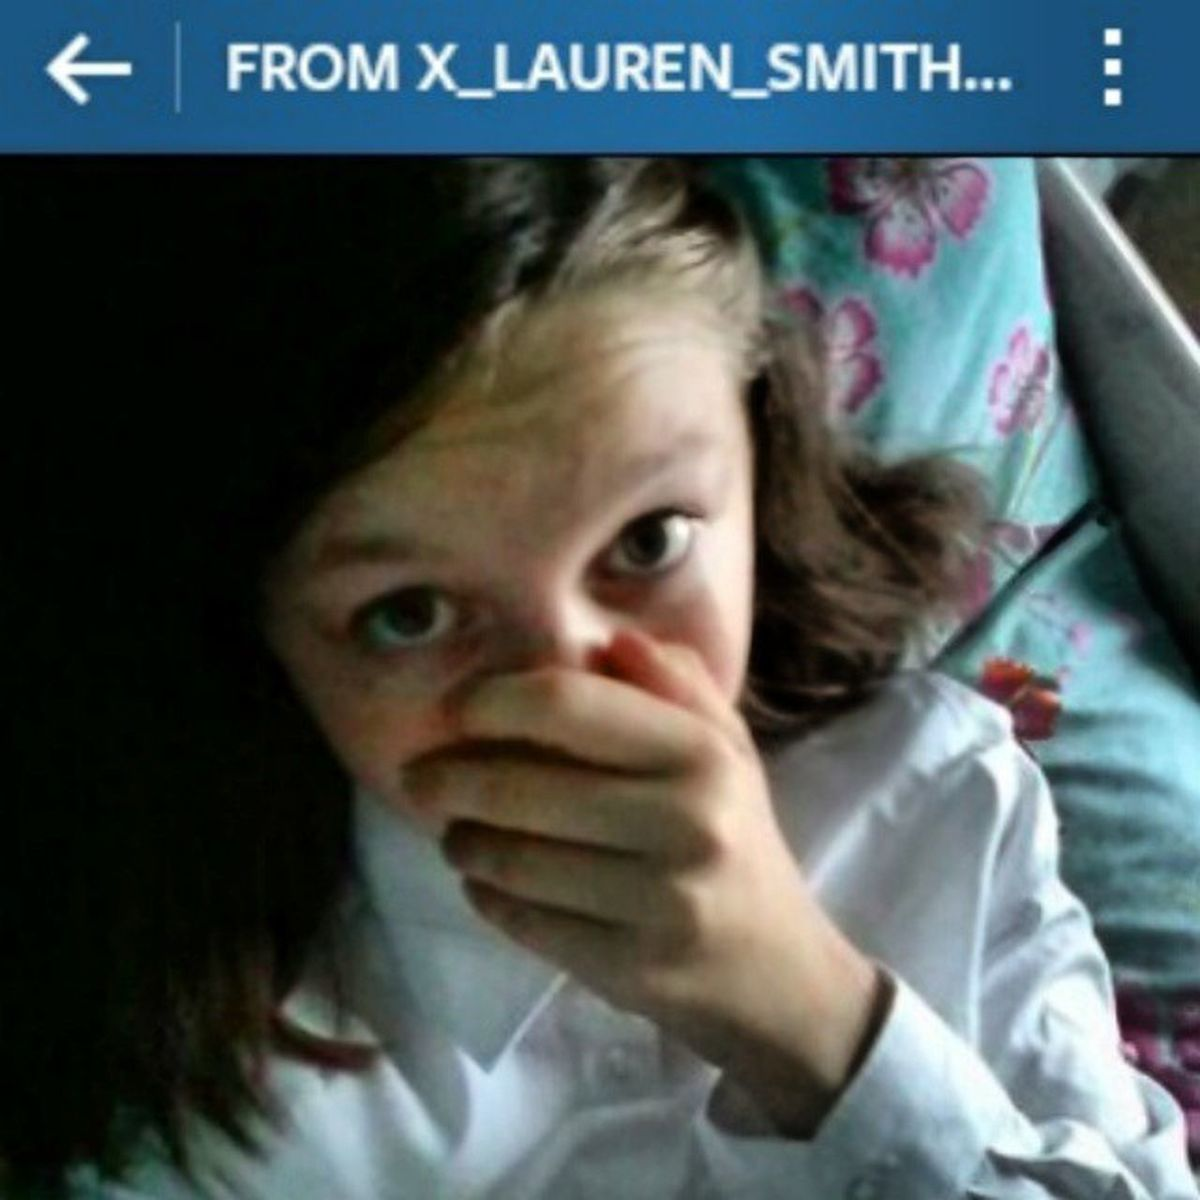 Shout out @x_lauren_smith_x Follow the beautiful lady @x_lauren_smith_x @x_lauren_smith_x Much thanks for your likes baby gal @x_lauren_smith_x Cutelady Like to like Follow to follow @x_lauren_smith_x